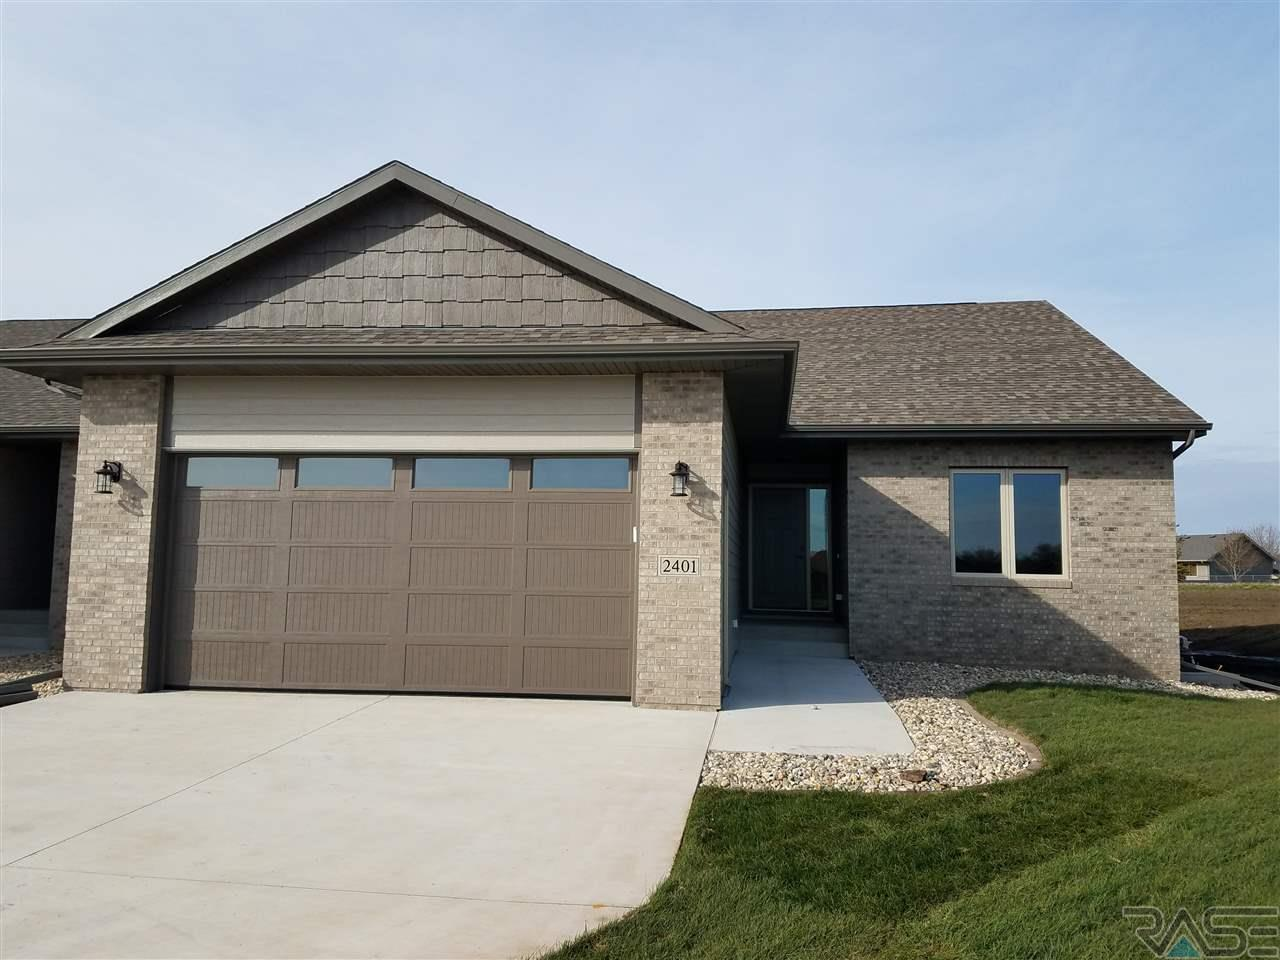 Property for sale at 2401 E Tranquility Cir, Sioux Falls,  SD 57108